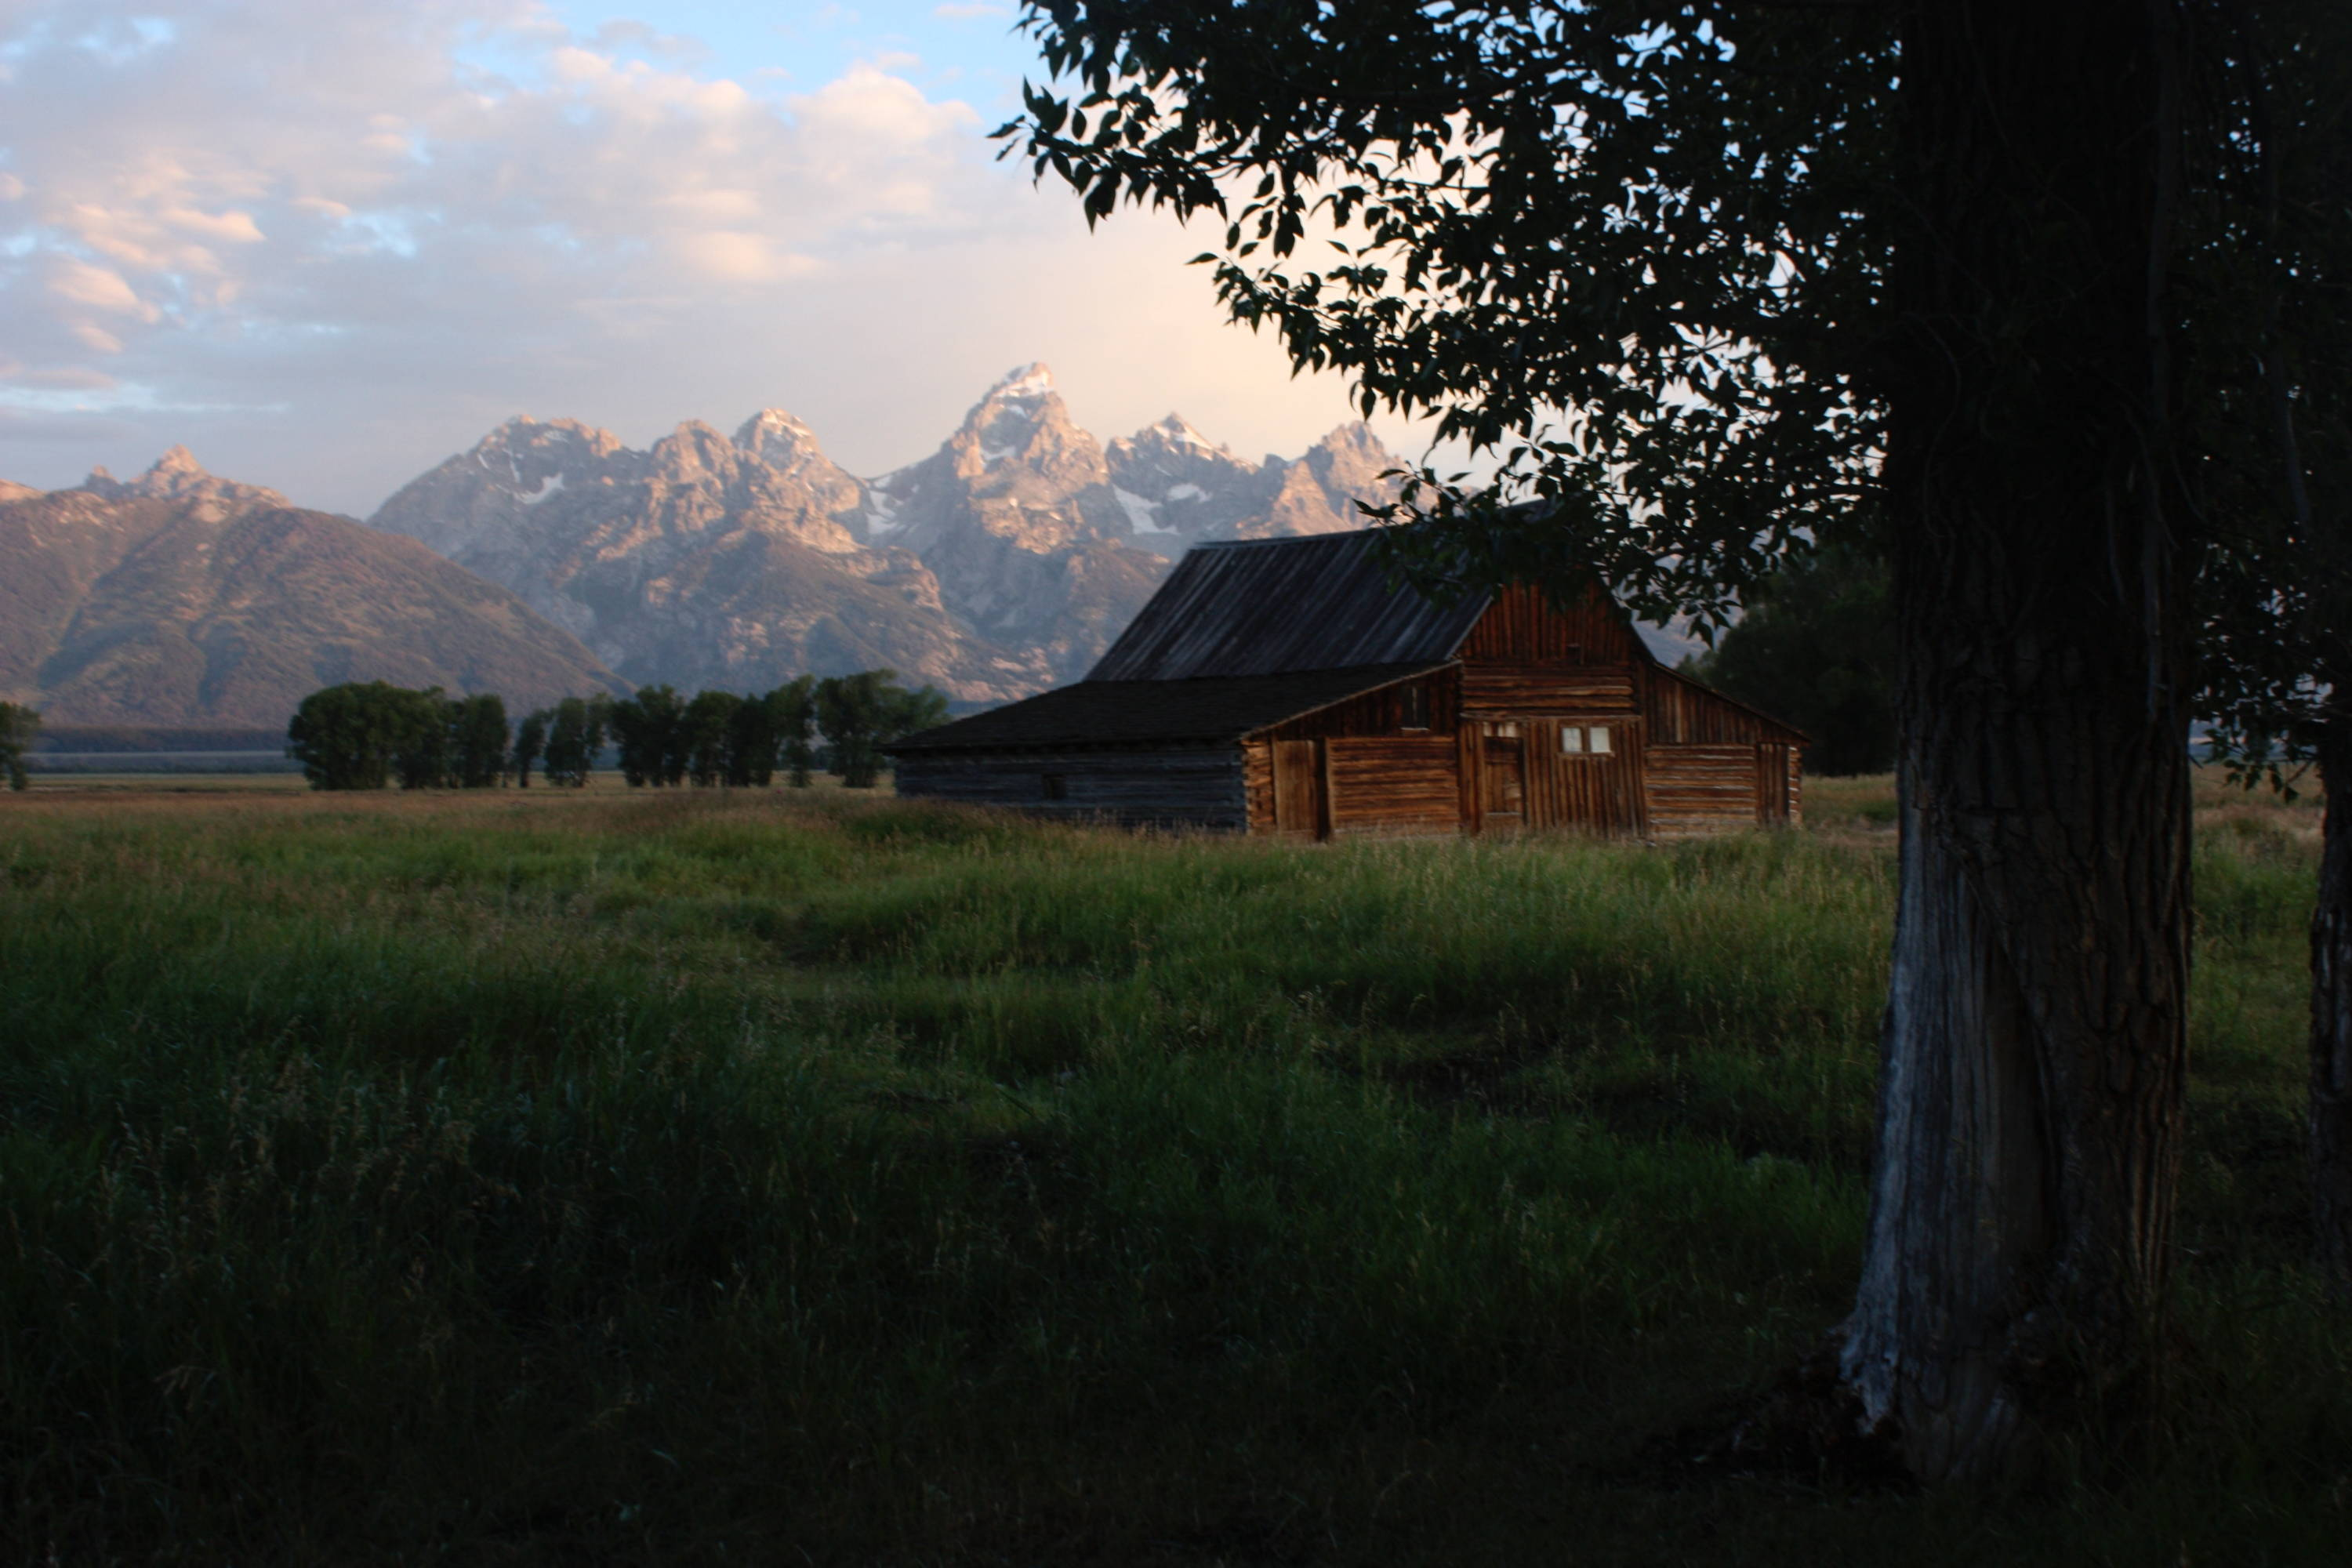 Grand Teton National Park Camping & Other Weekend Getaways: Barn and tree in foreground with peaking majestic mountains in background.